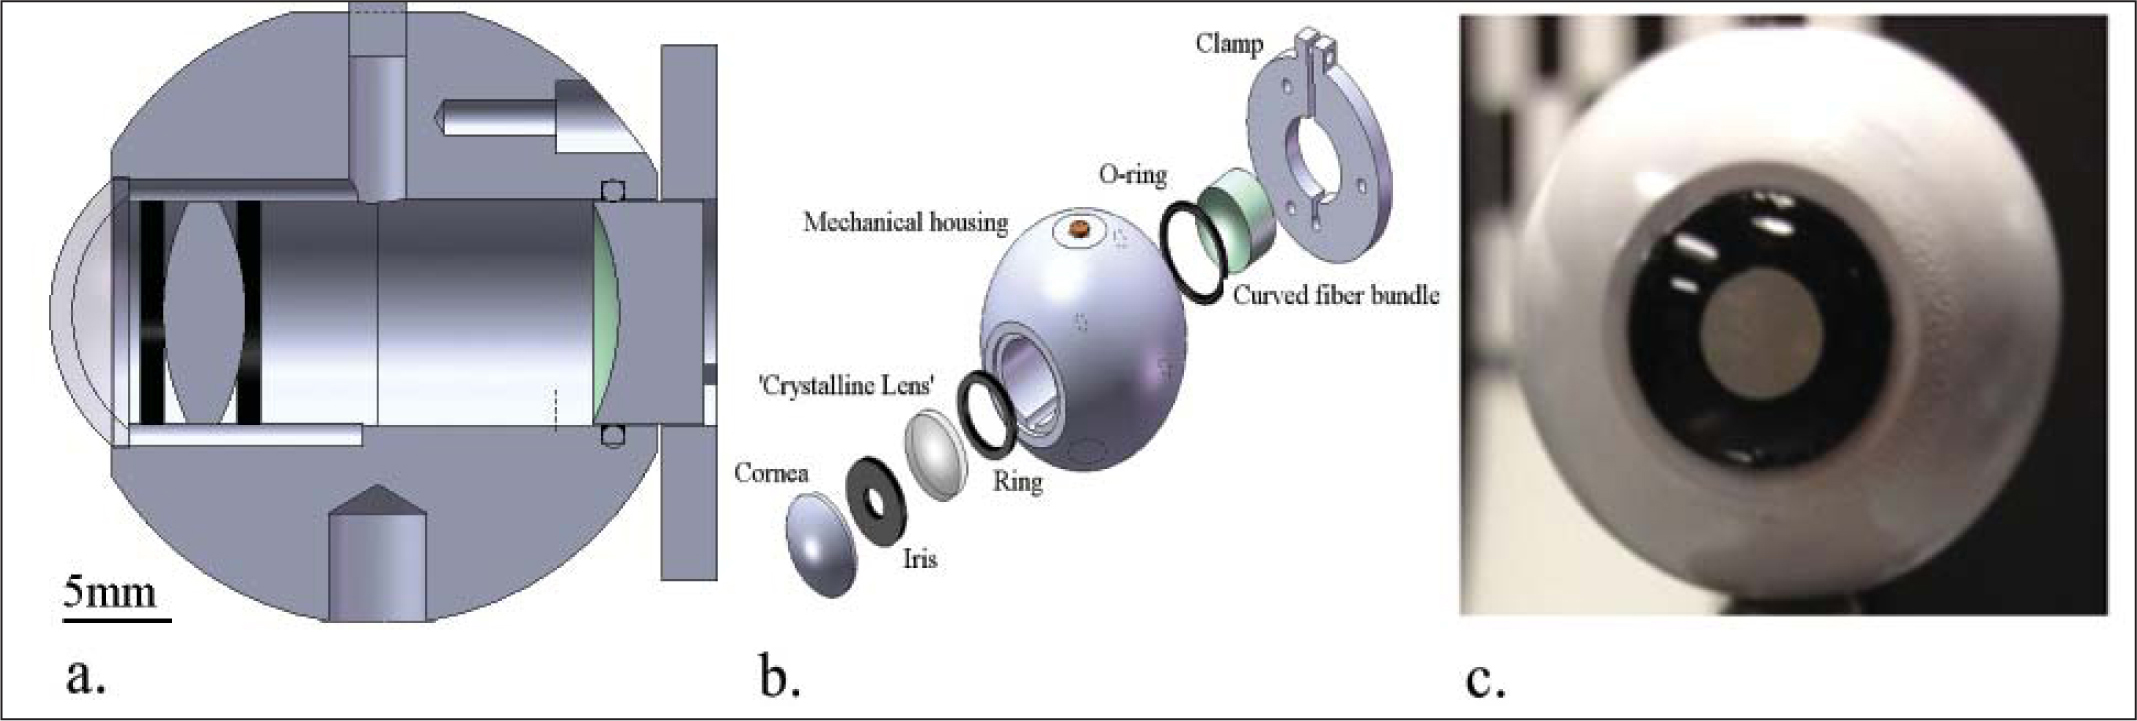 (A) Cross-sectional view of the optomechanical eye model. (B) Exploded view with the individual parts listed. (C) The assembled optomechanical eye model that is comparable to a life-size human eye.